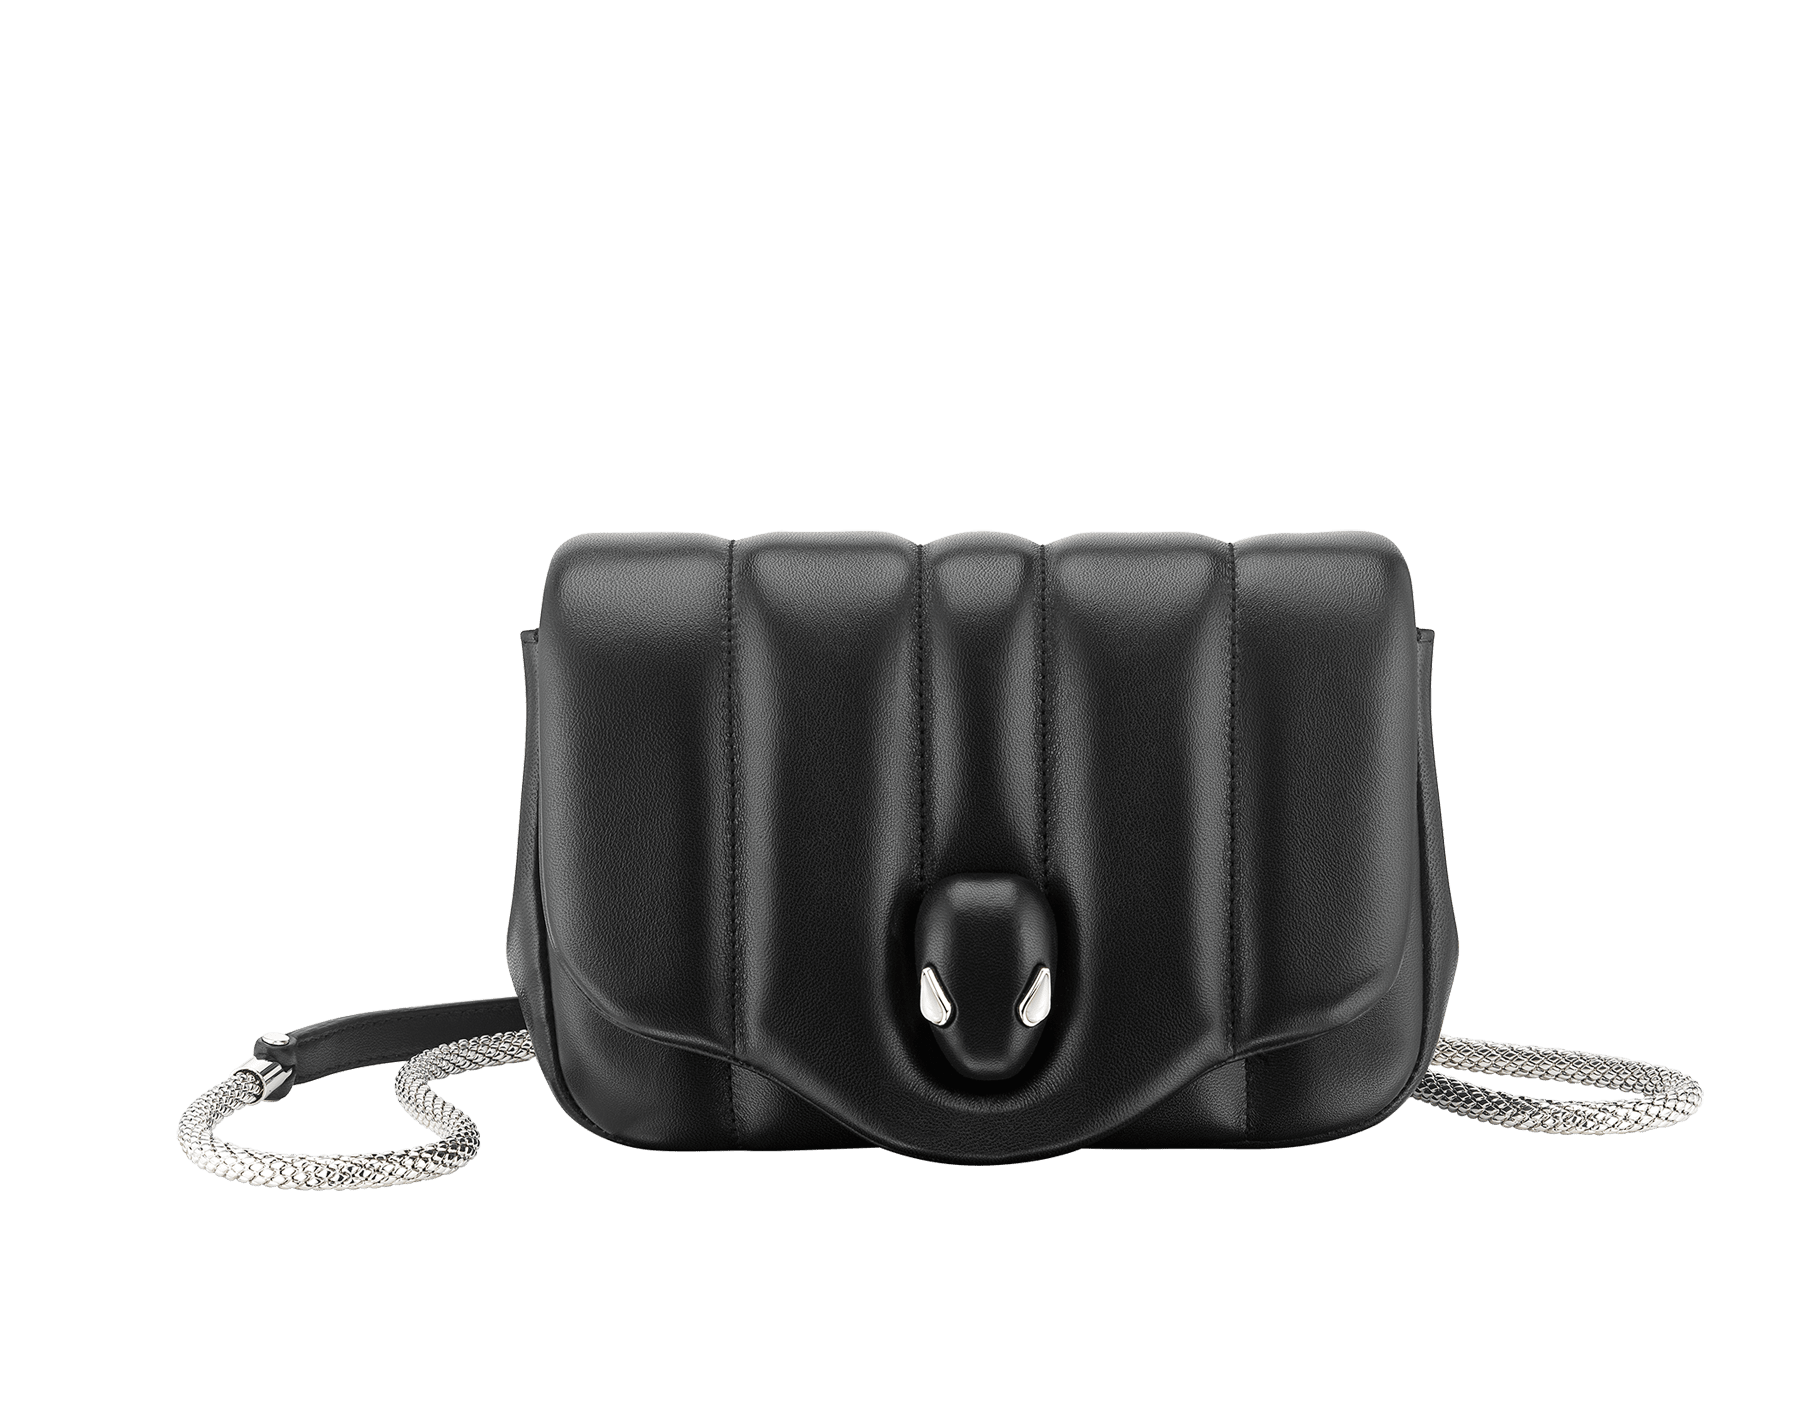 Bvlgari x Ambush Belt Bag